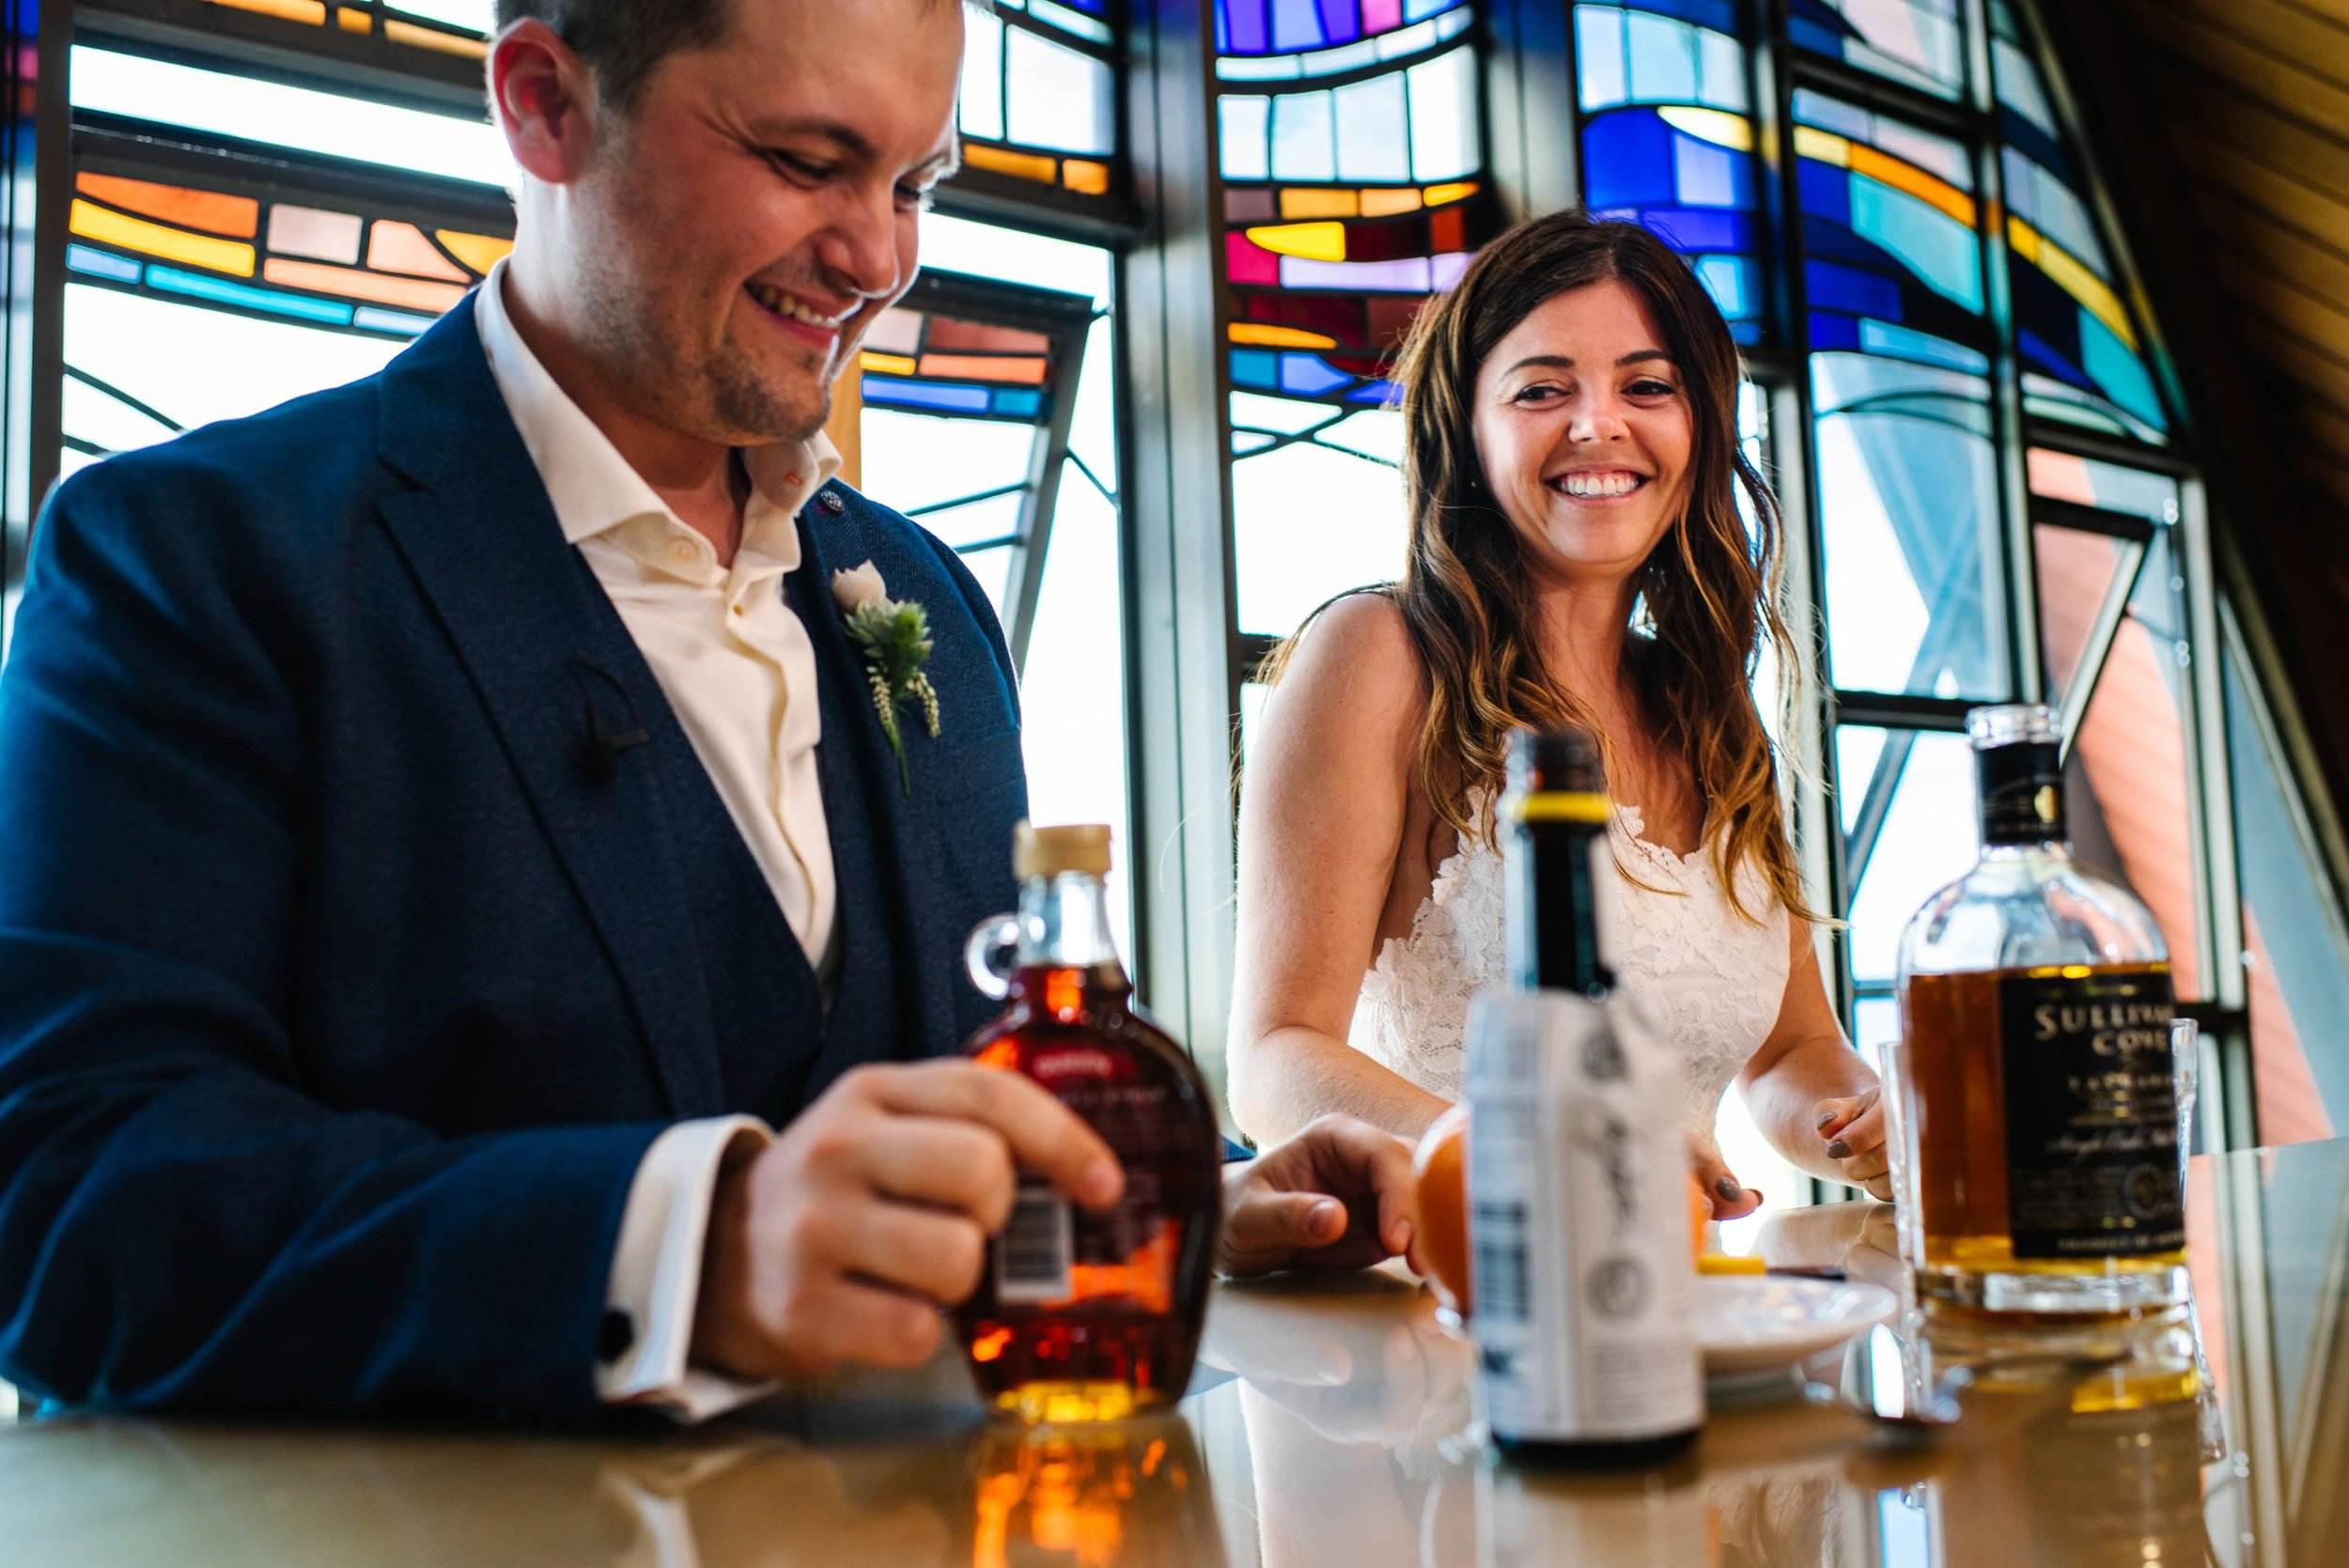 Bride and groom prepare an Old Fashioned during wedding service